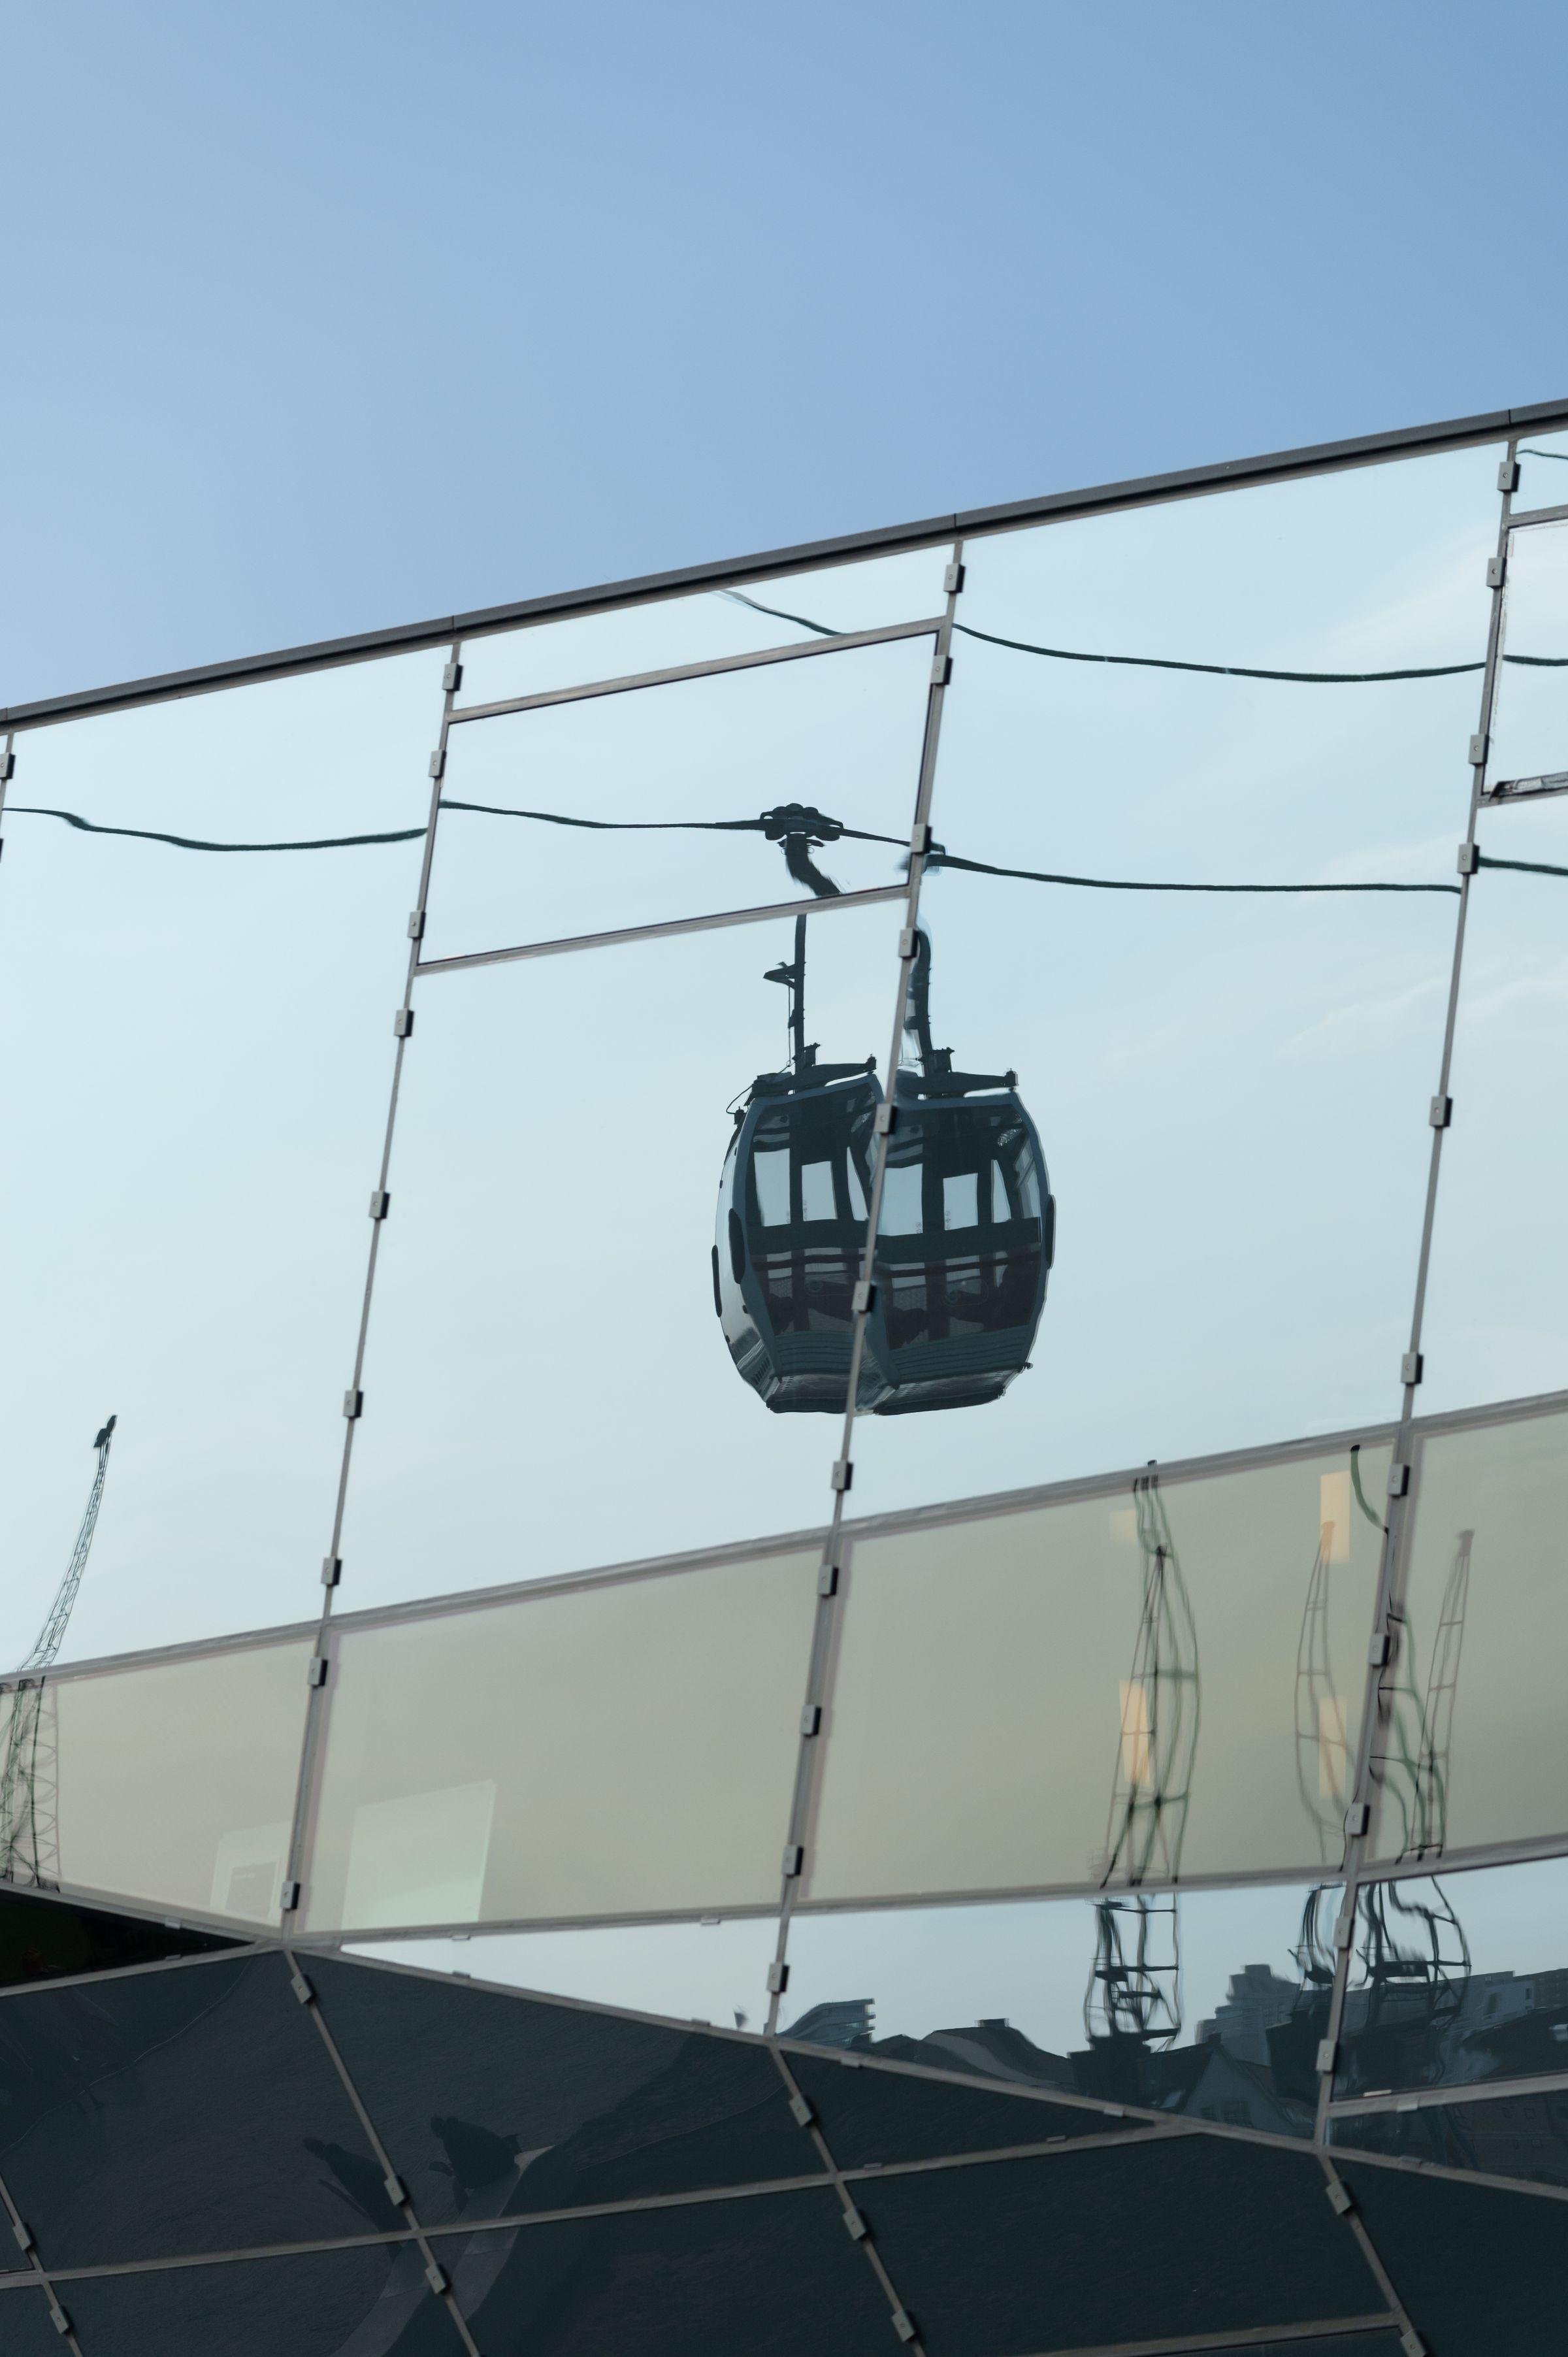 Emirates Airline Cable Car reflection